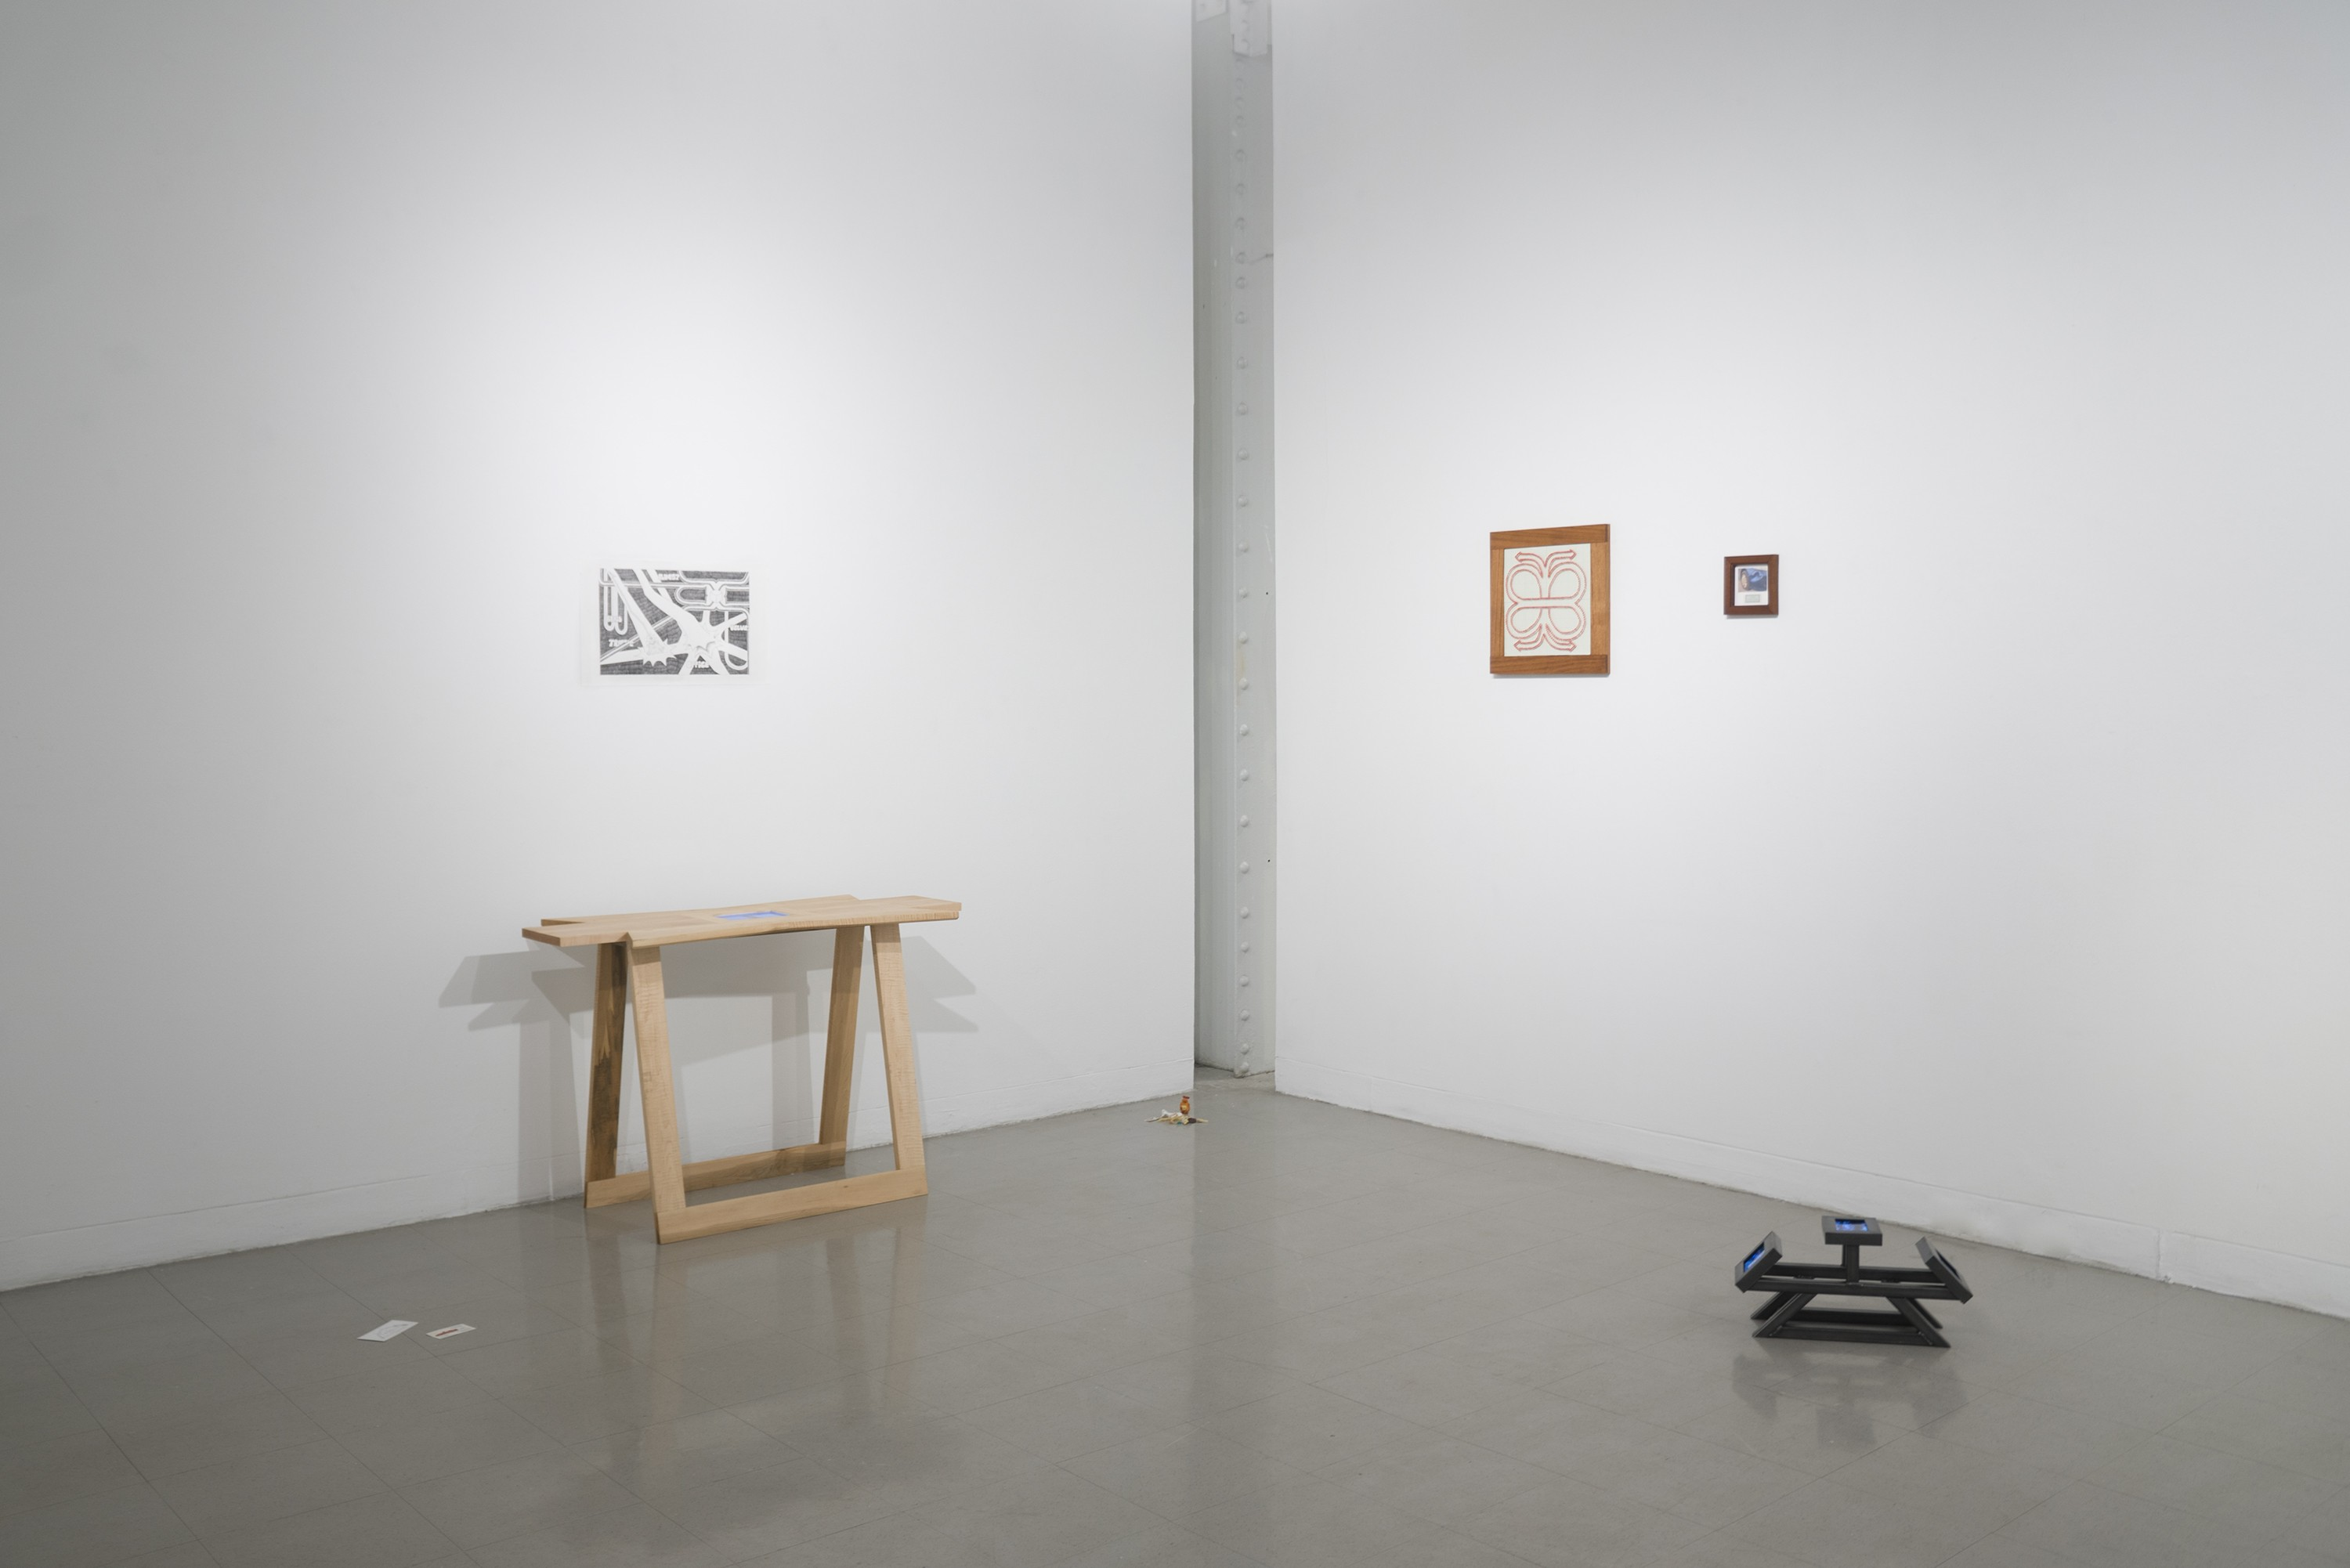 A photo of the whole show is installed in a gallery. From left to right: cards on the ground, a table with a screen in the tabletop and a drawing above, a pile of small objects on the ground, two wall-mounted framed works, and a small steel sculpture with